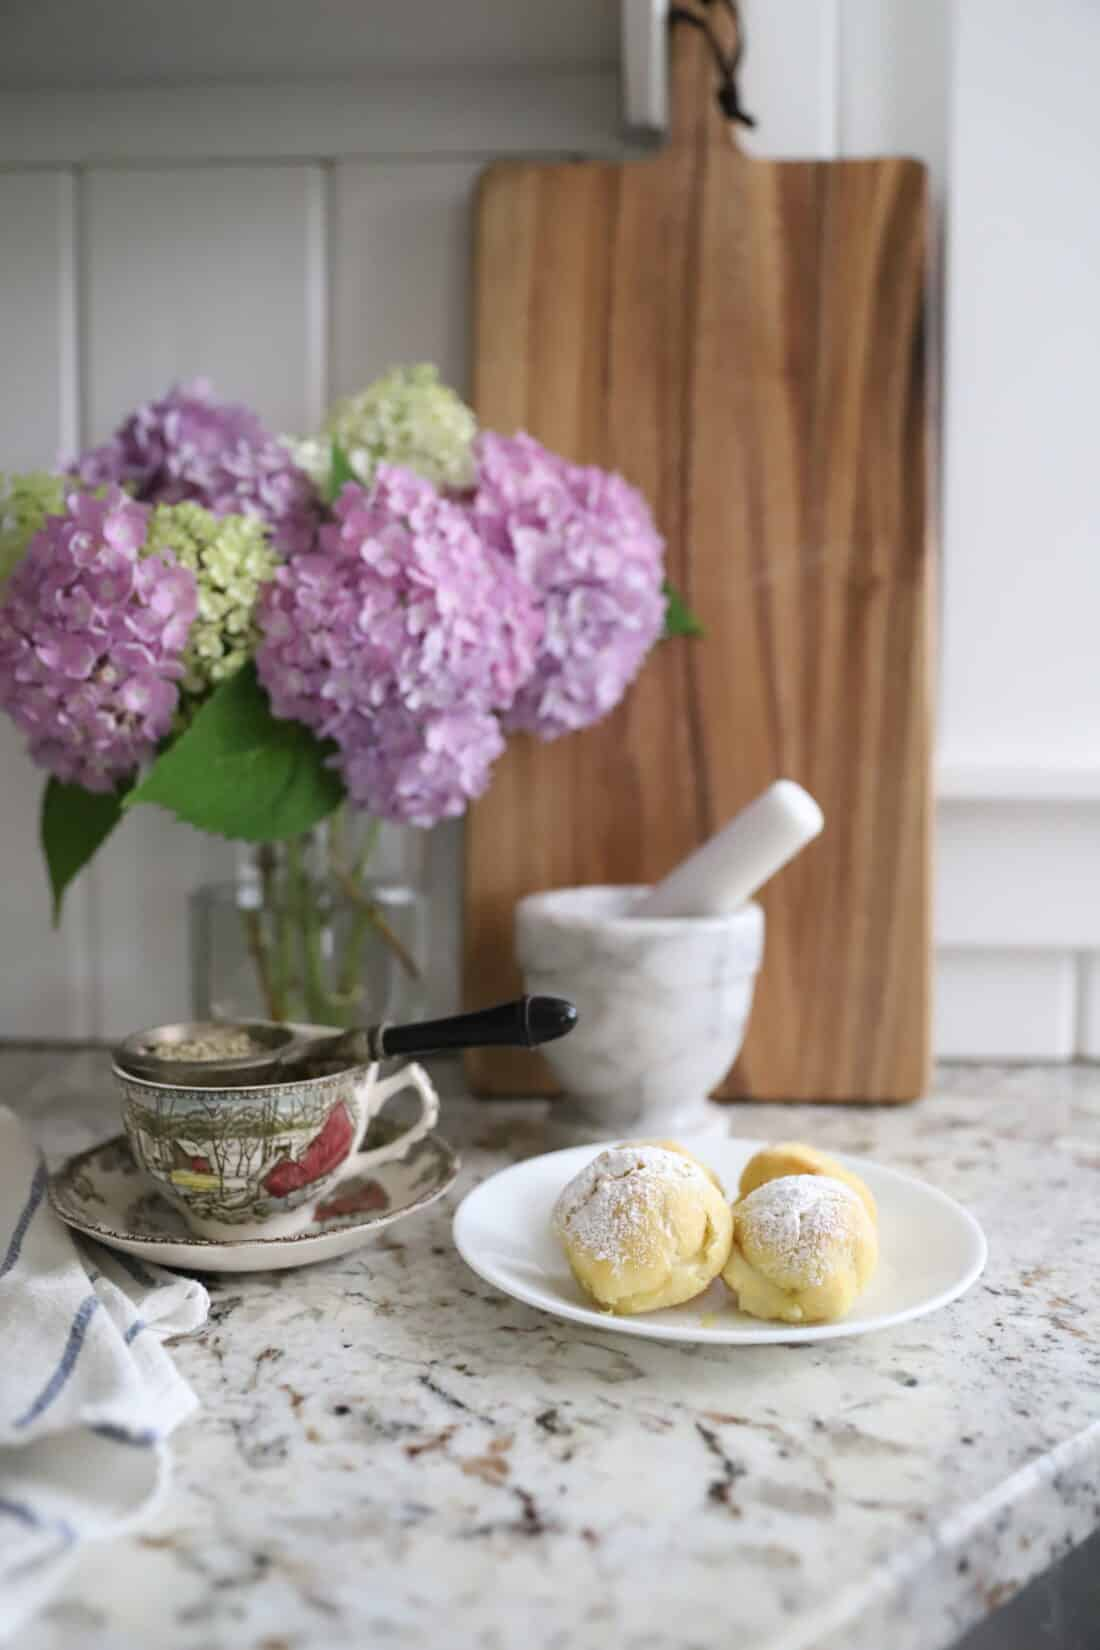 cream puffs and a cup of tea on a kitchen counter